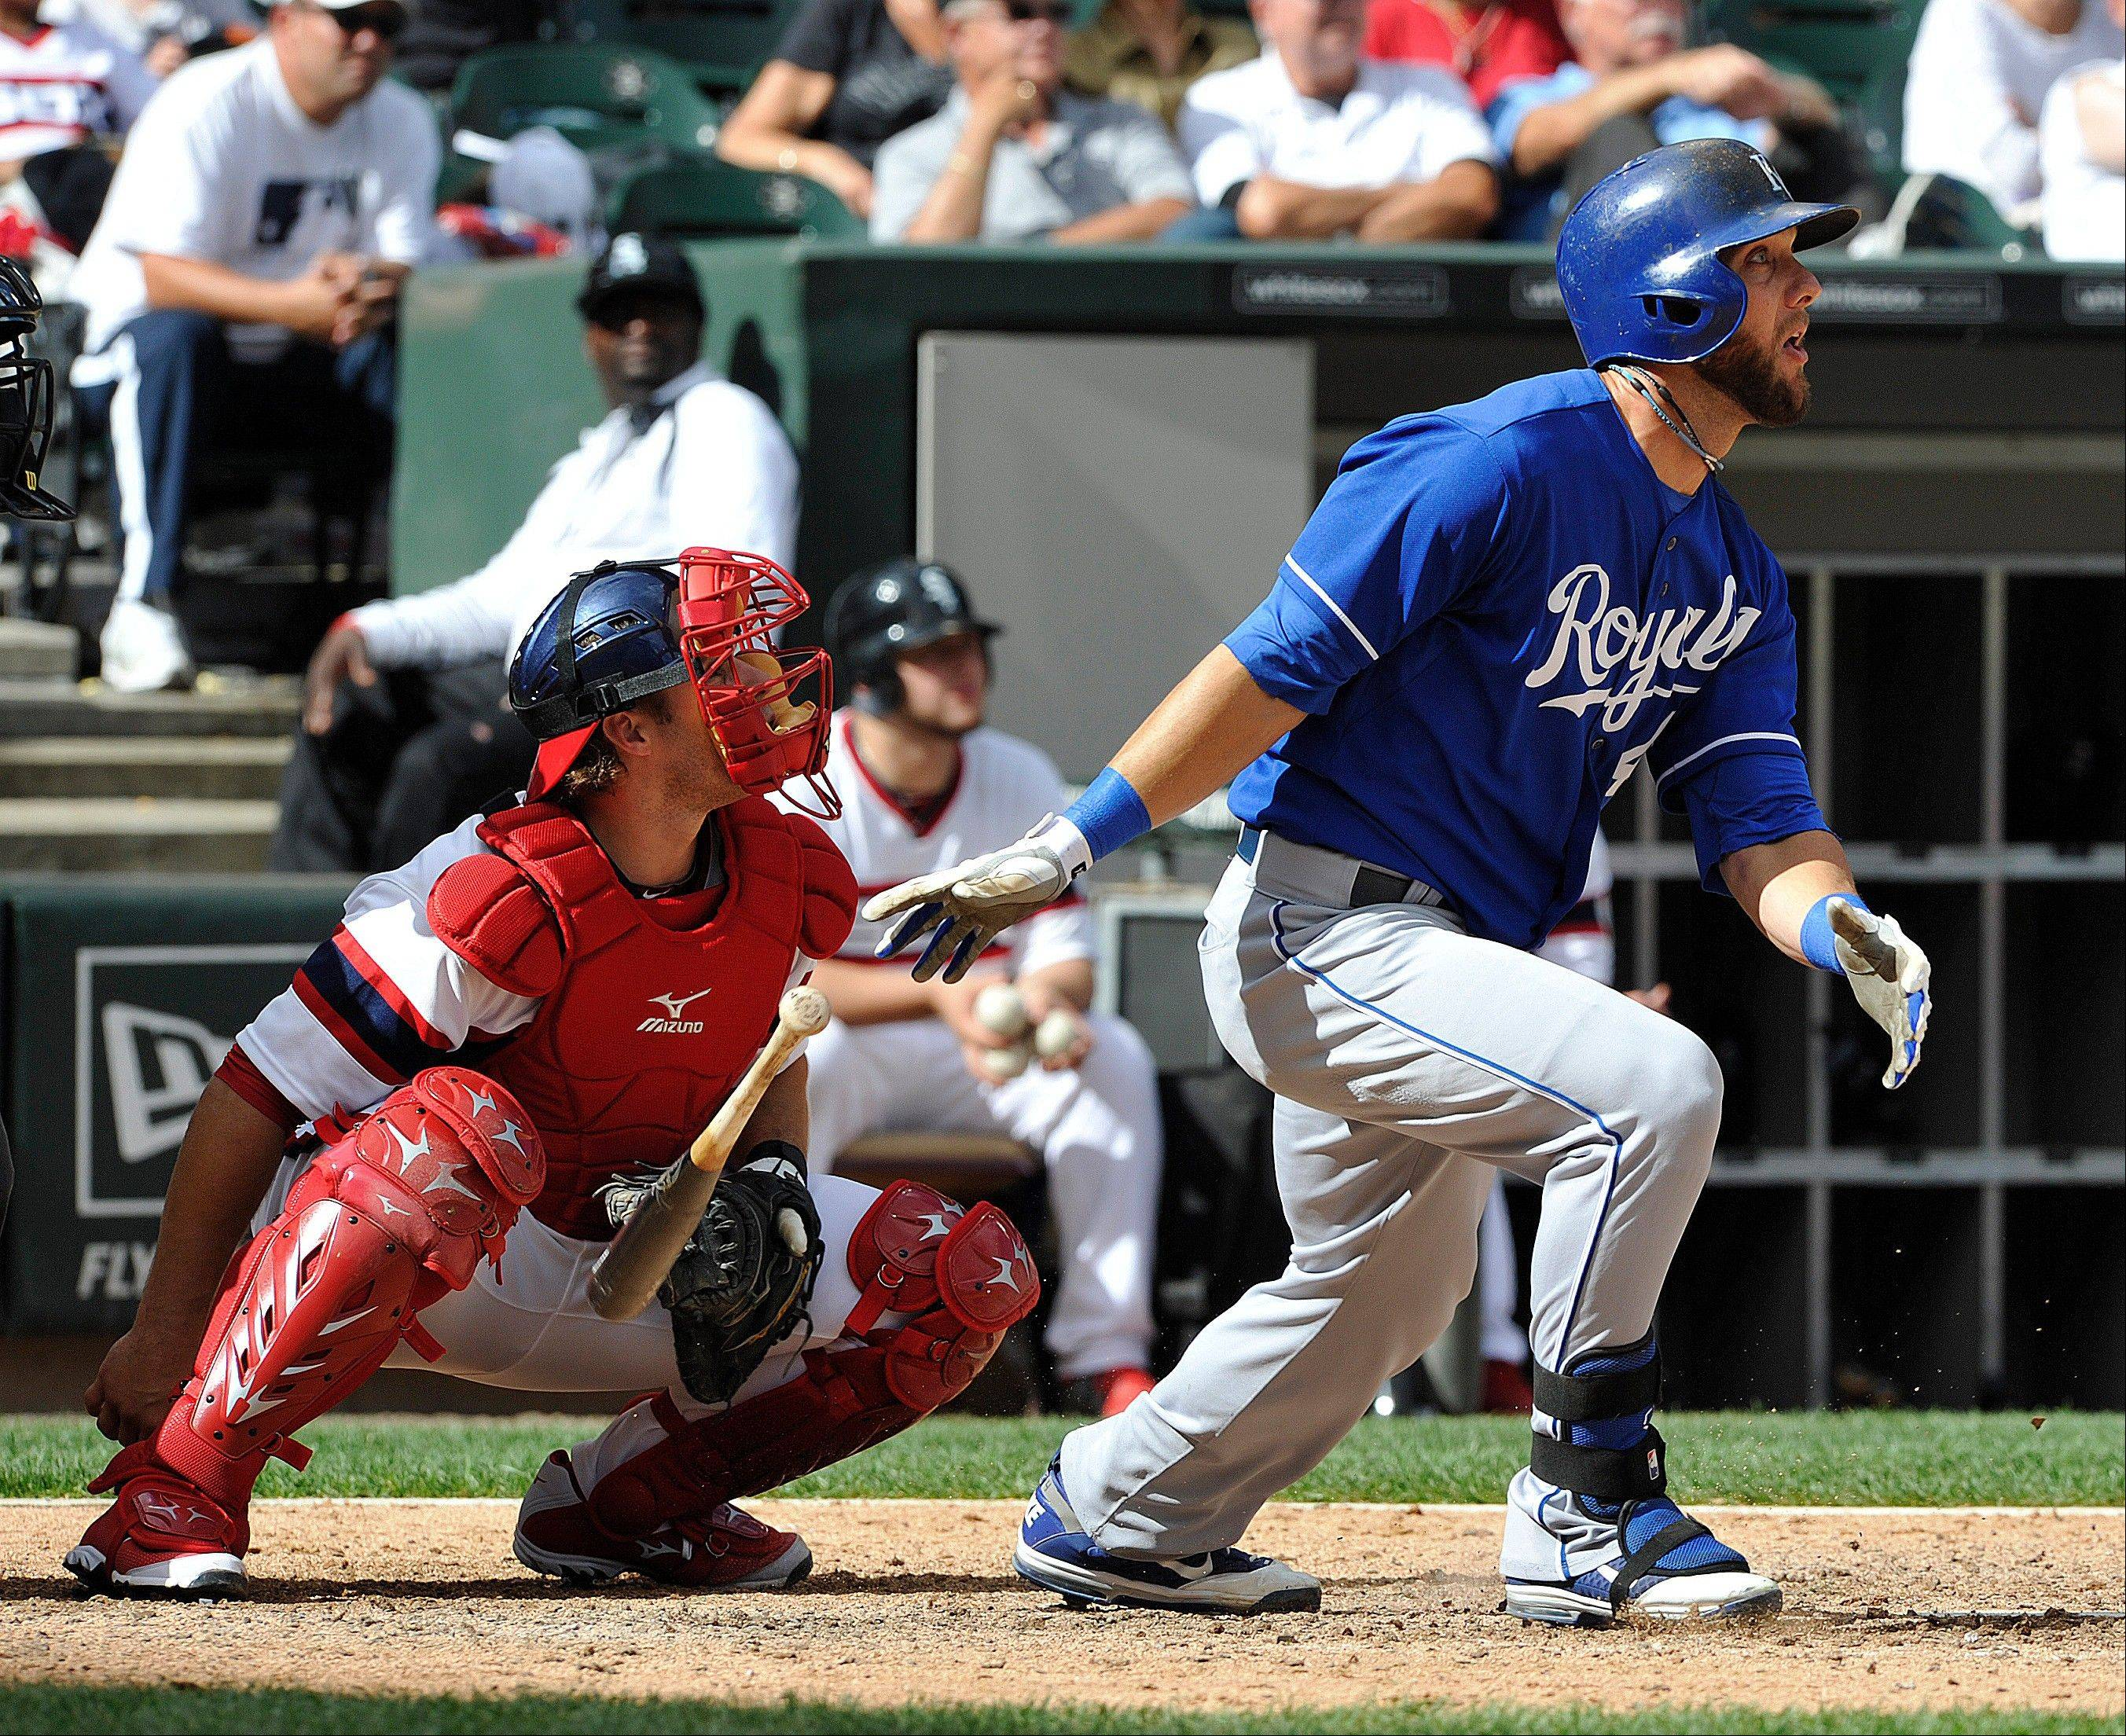 Tyler Flowers, left, looks on as Kansas City Royals' Alex Gordon hits a 2-run home against the Chicago White Sox during the 12th inning of a baseball game on Sunday, July 28, 2013, in Chicago.